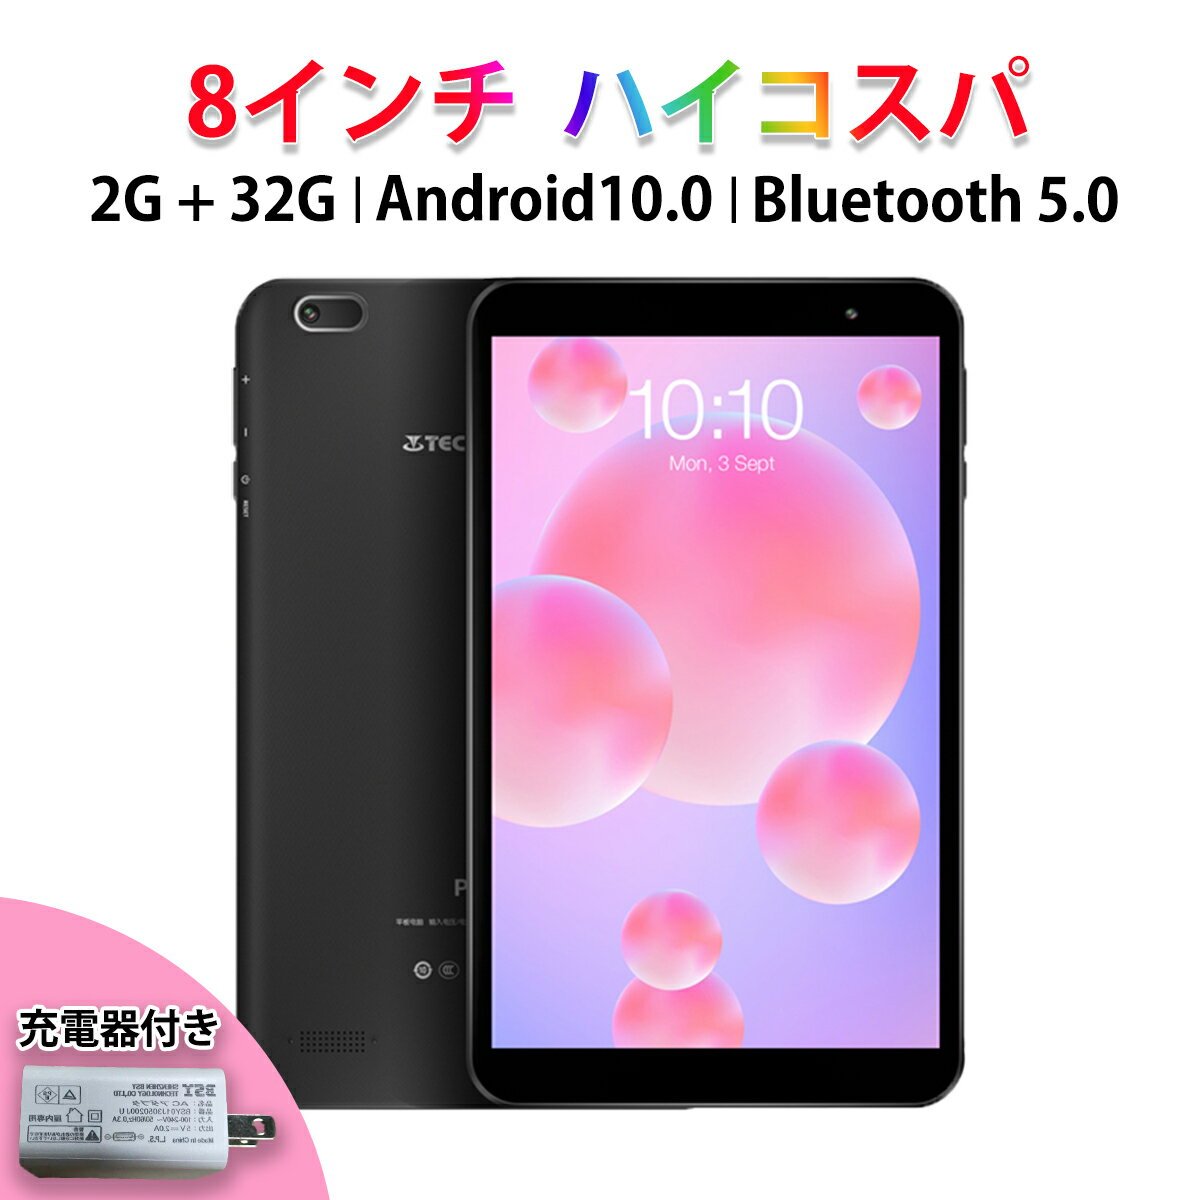 【7%OFFクーポン★期間限定】充電器付き日本語設定済8インチAndroid10.0大画面2GBRAM32GBROMタブレットPC本体端末wi-fiモデルwifiタブレットpcパソコンandroidtabletアンドロイドTeclastP80子供用大容量即日配送